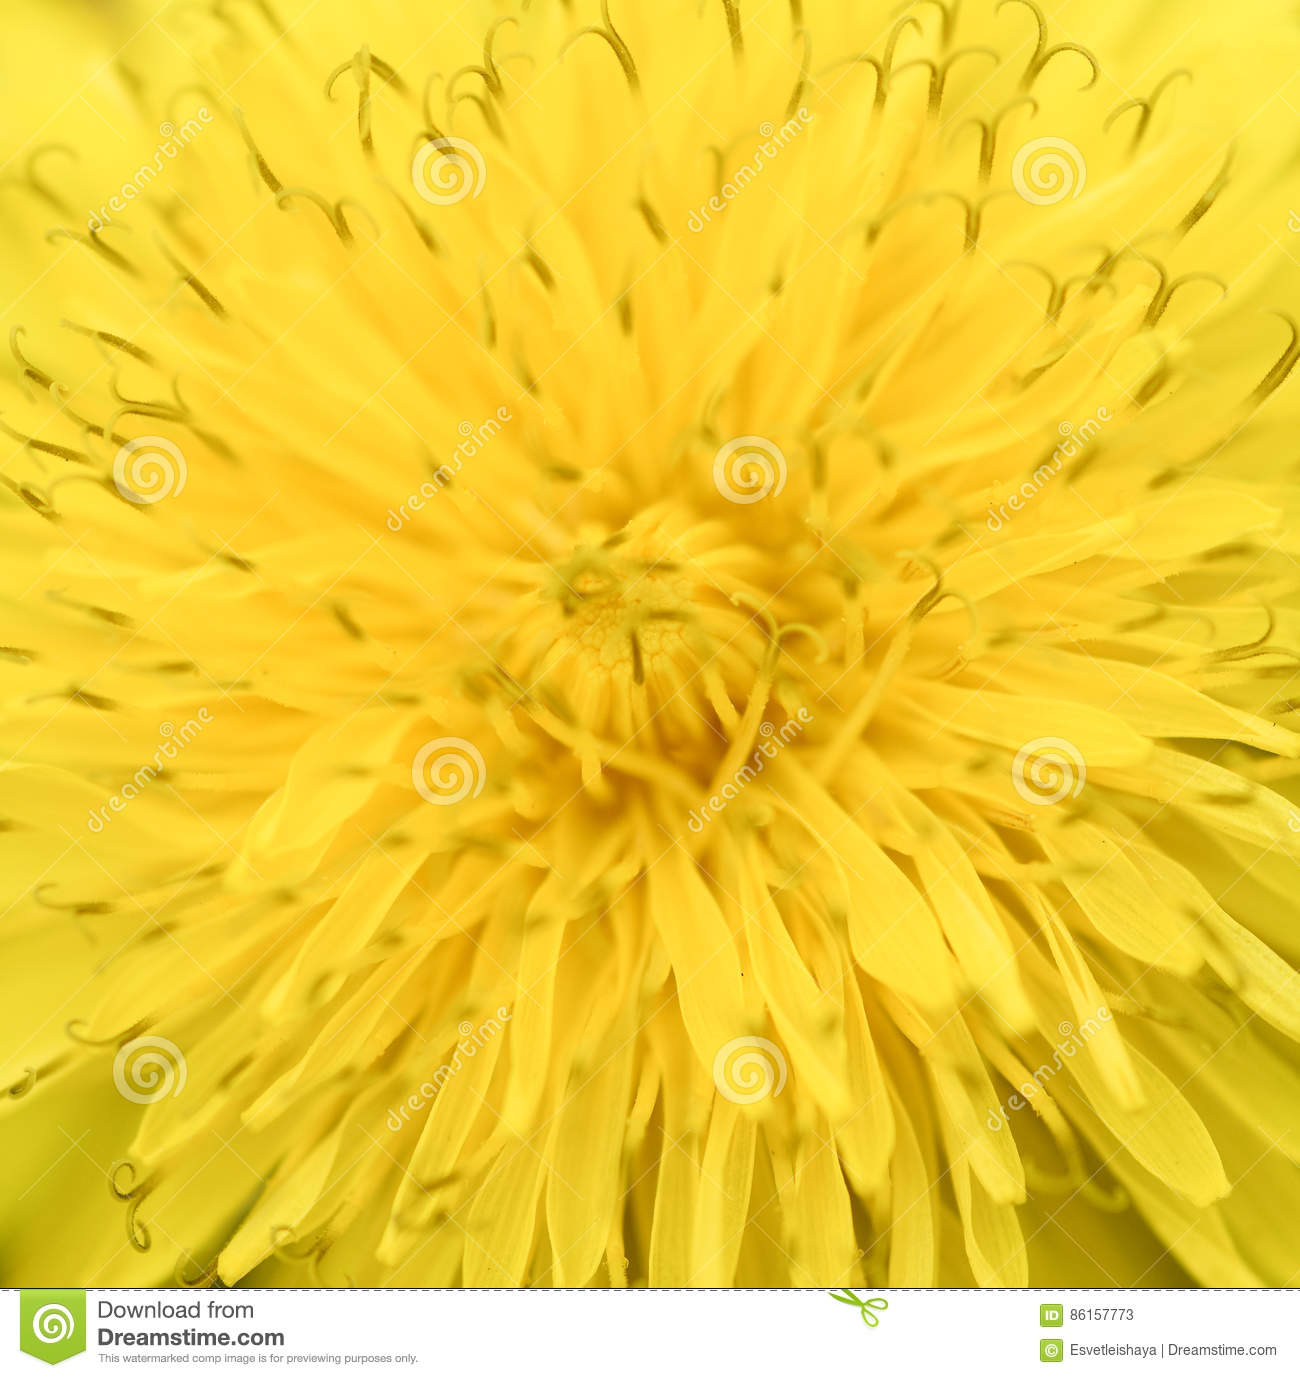 Bright Yellow Dandelion Close Up. Floral Spring Background